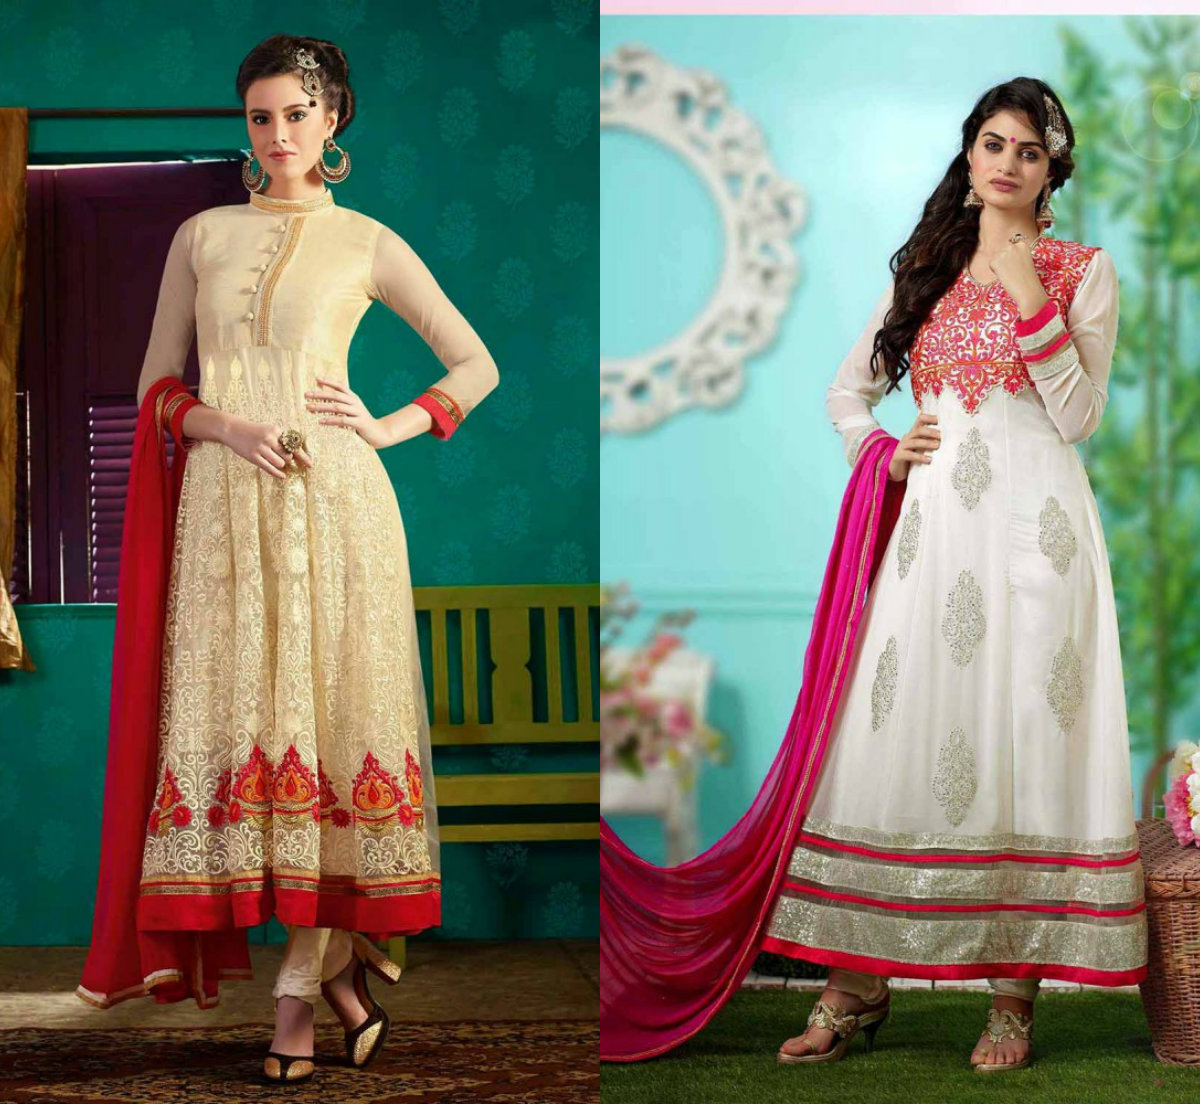 Daindiashop.com | Online Indian Wedding Suits, Designer Suits ...